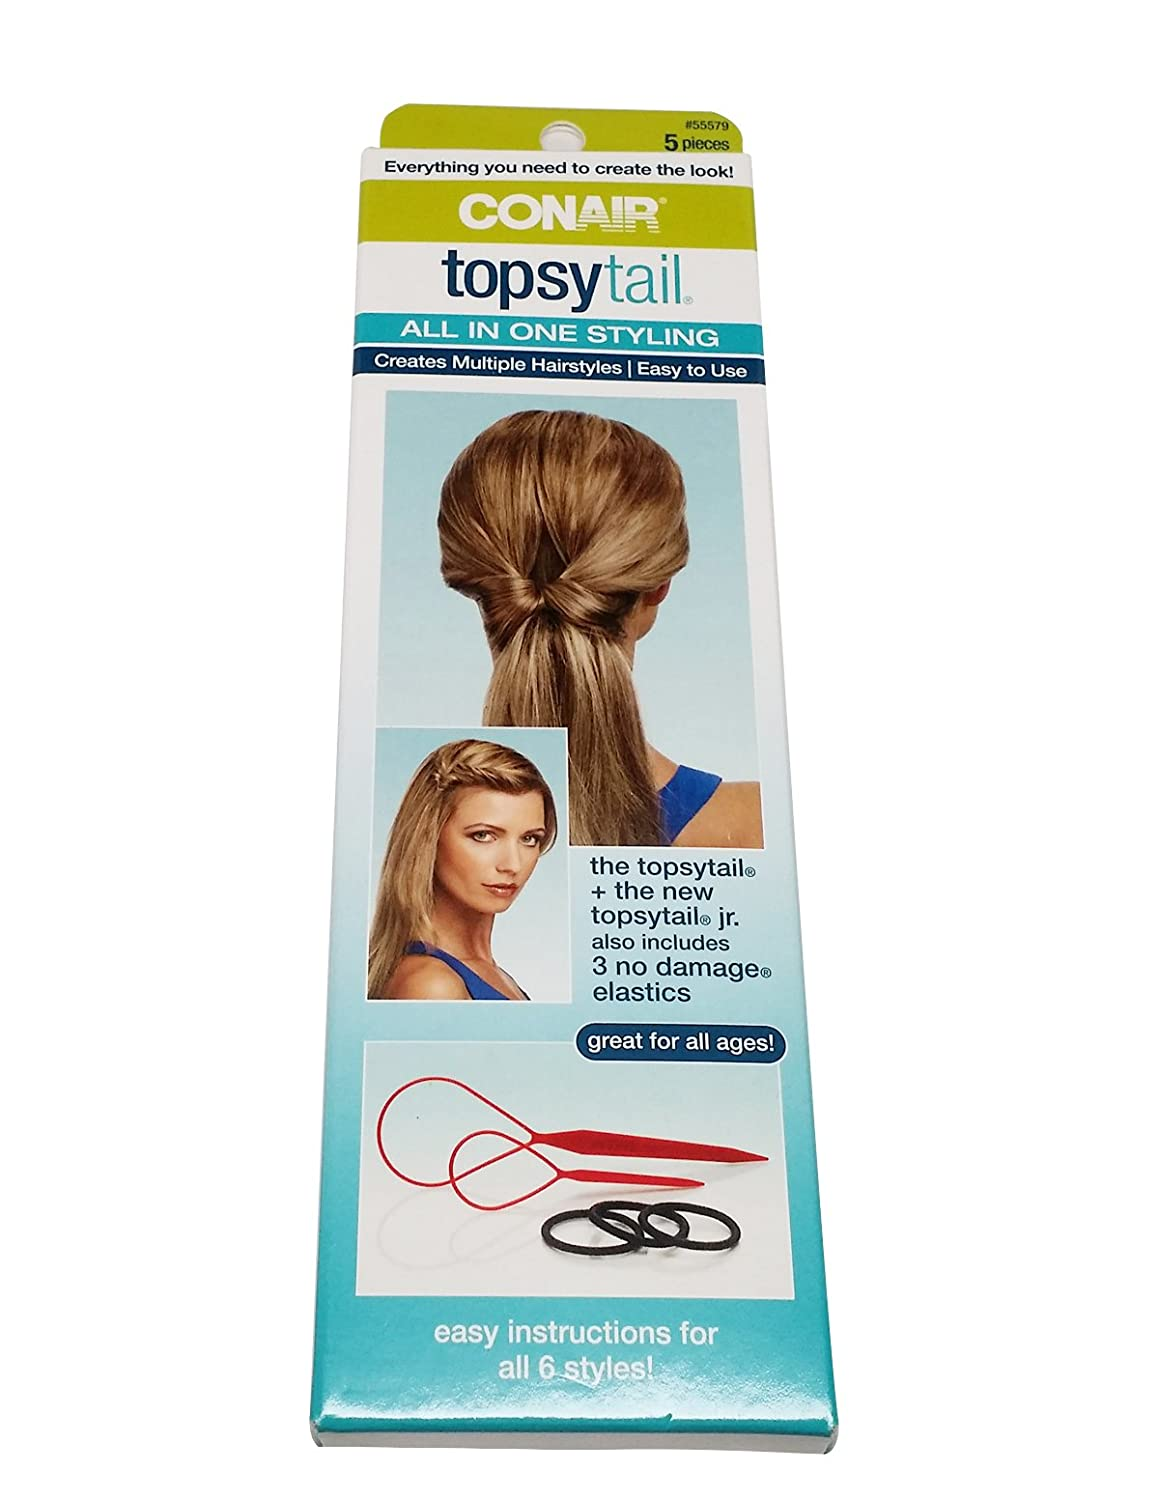 Conair Topsytail All in One Styling Kit, 3-Pack Conair Brush Corpora